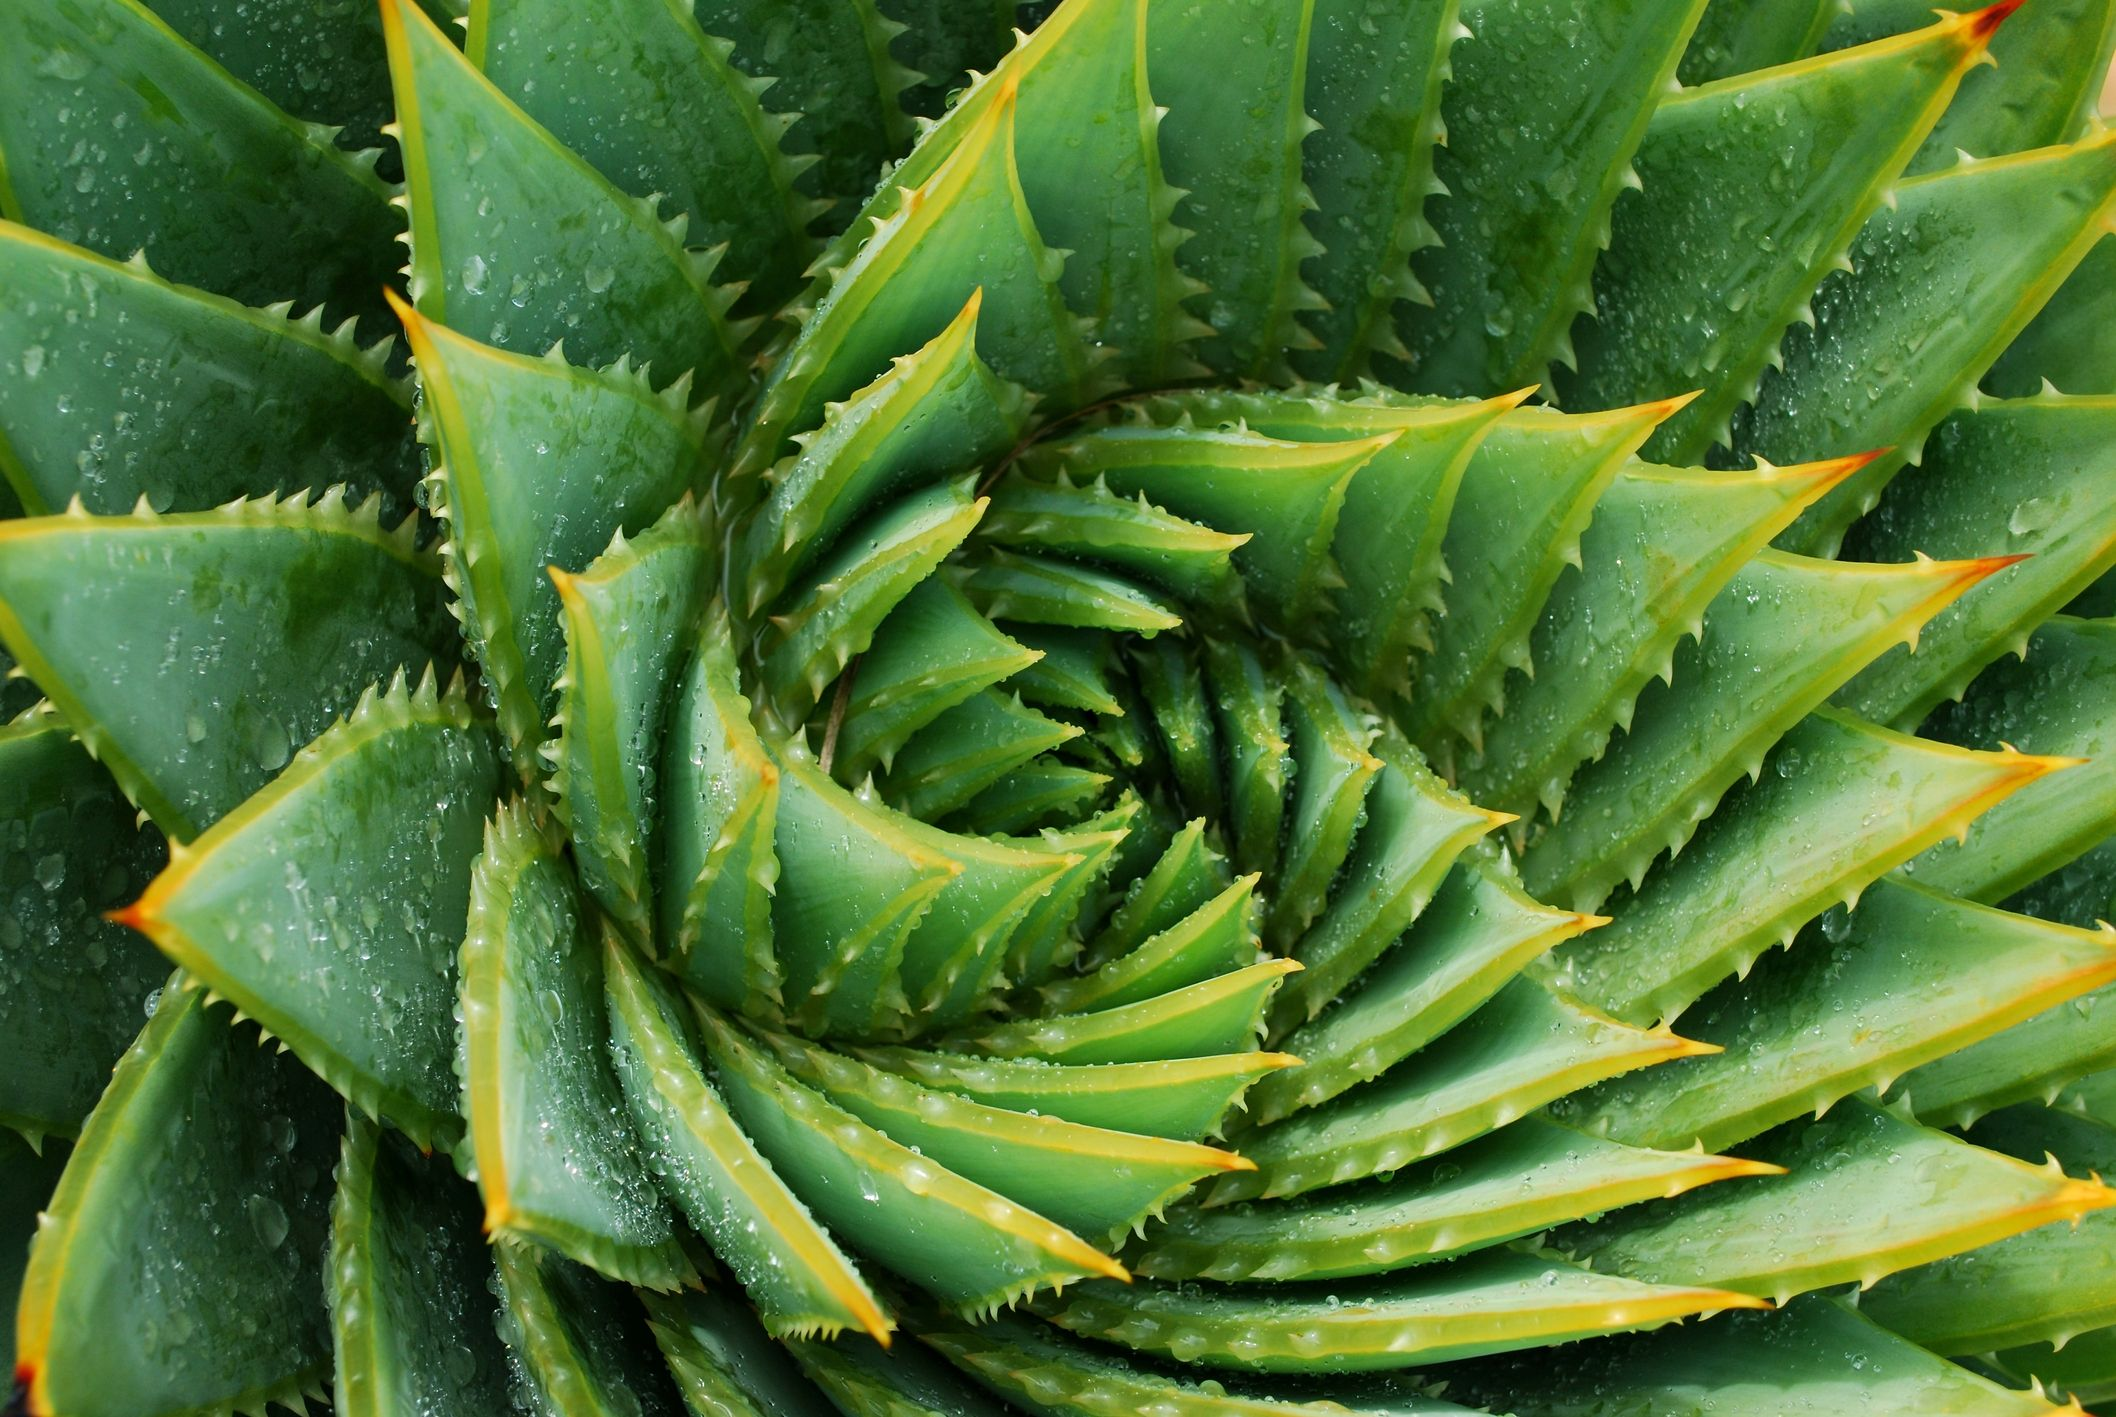 How To Grow And Care For Aloe Vera Plants